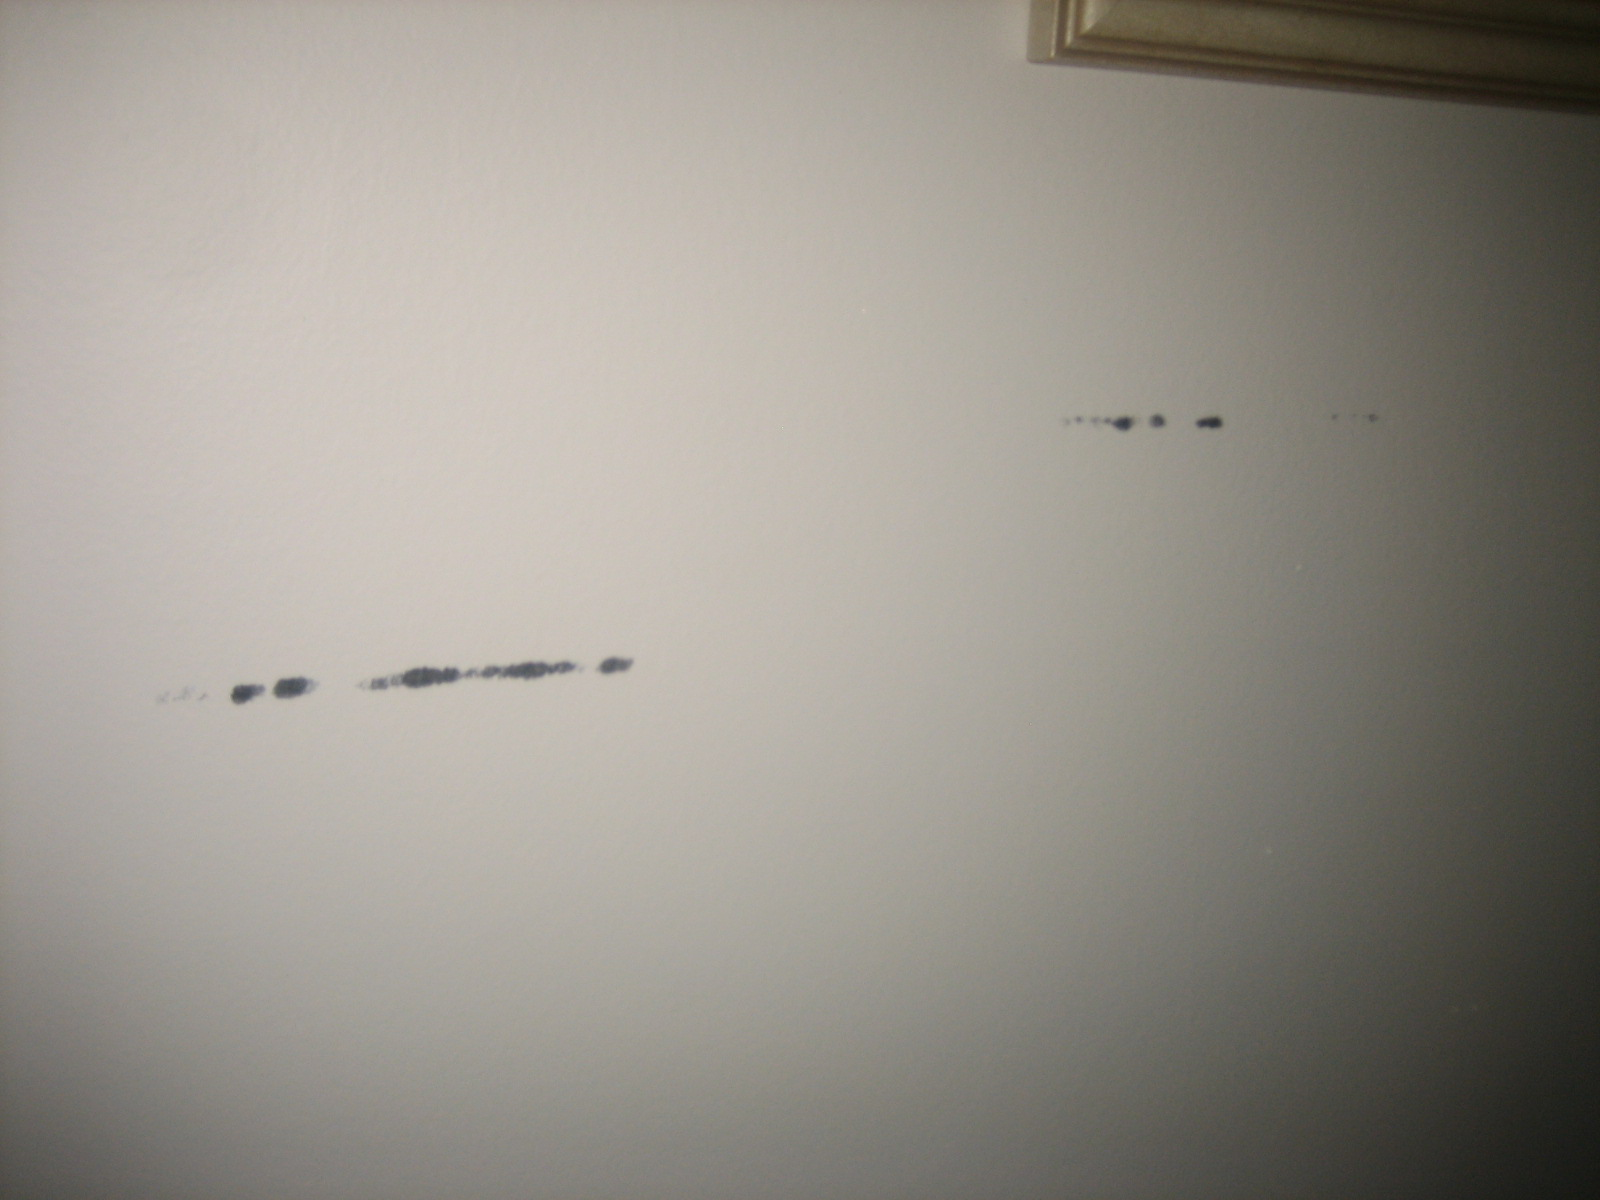 Picture of REPAIRNG SCRATCHES ON THE WALL